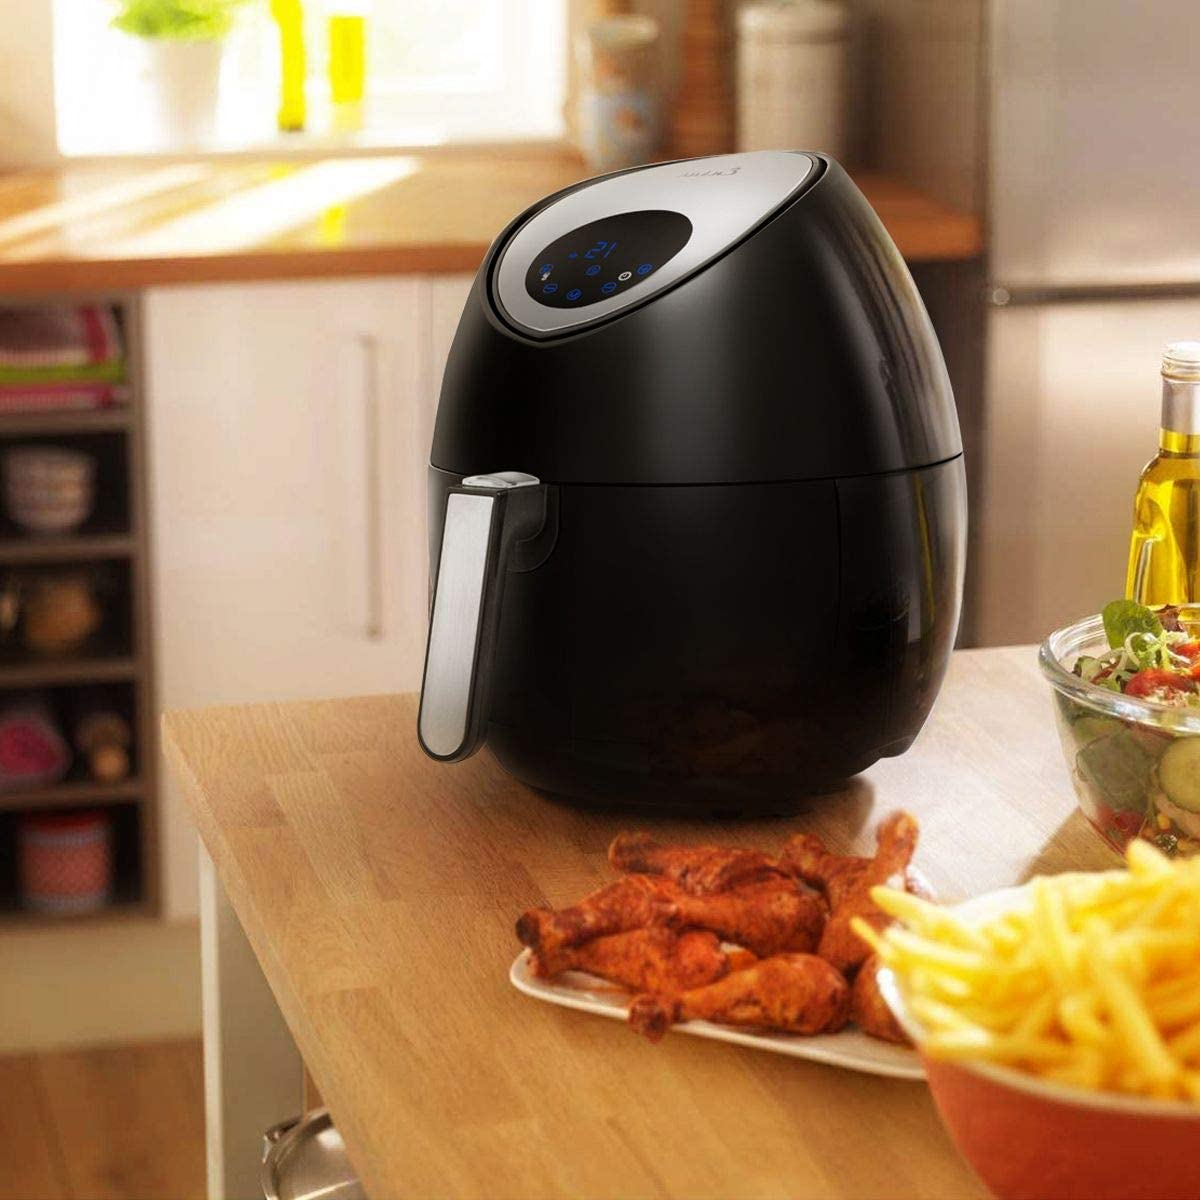 OKSLO Ensue 3.7 quart touch screen digital panel air fryer cooker 7 cooking sets, blac